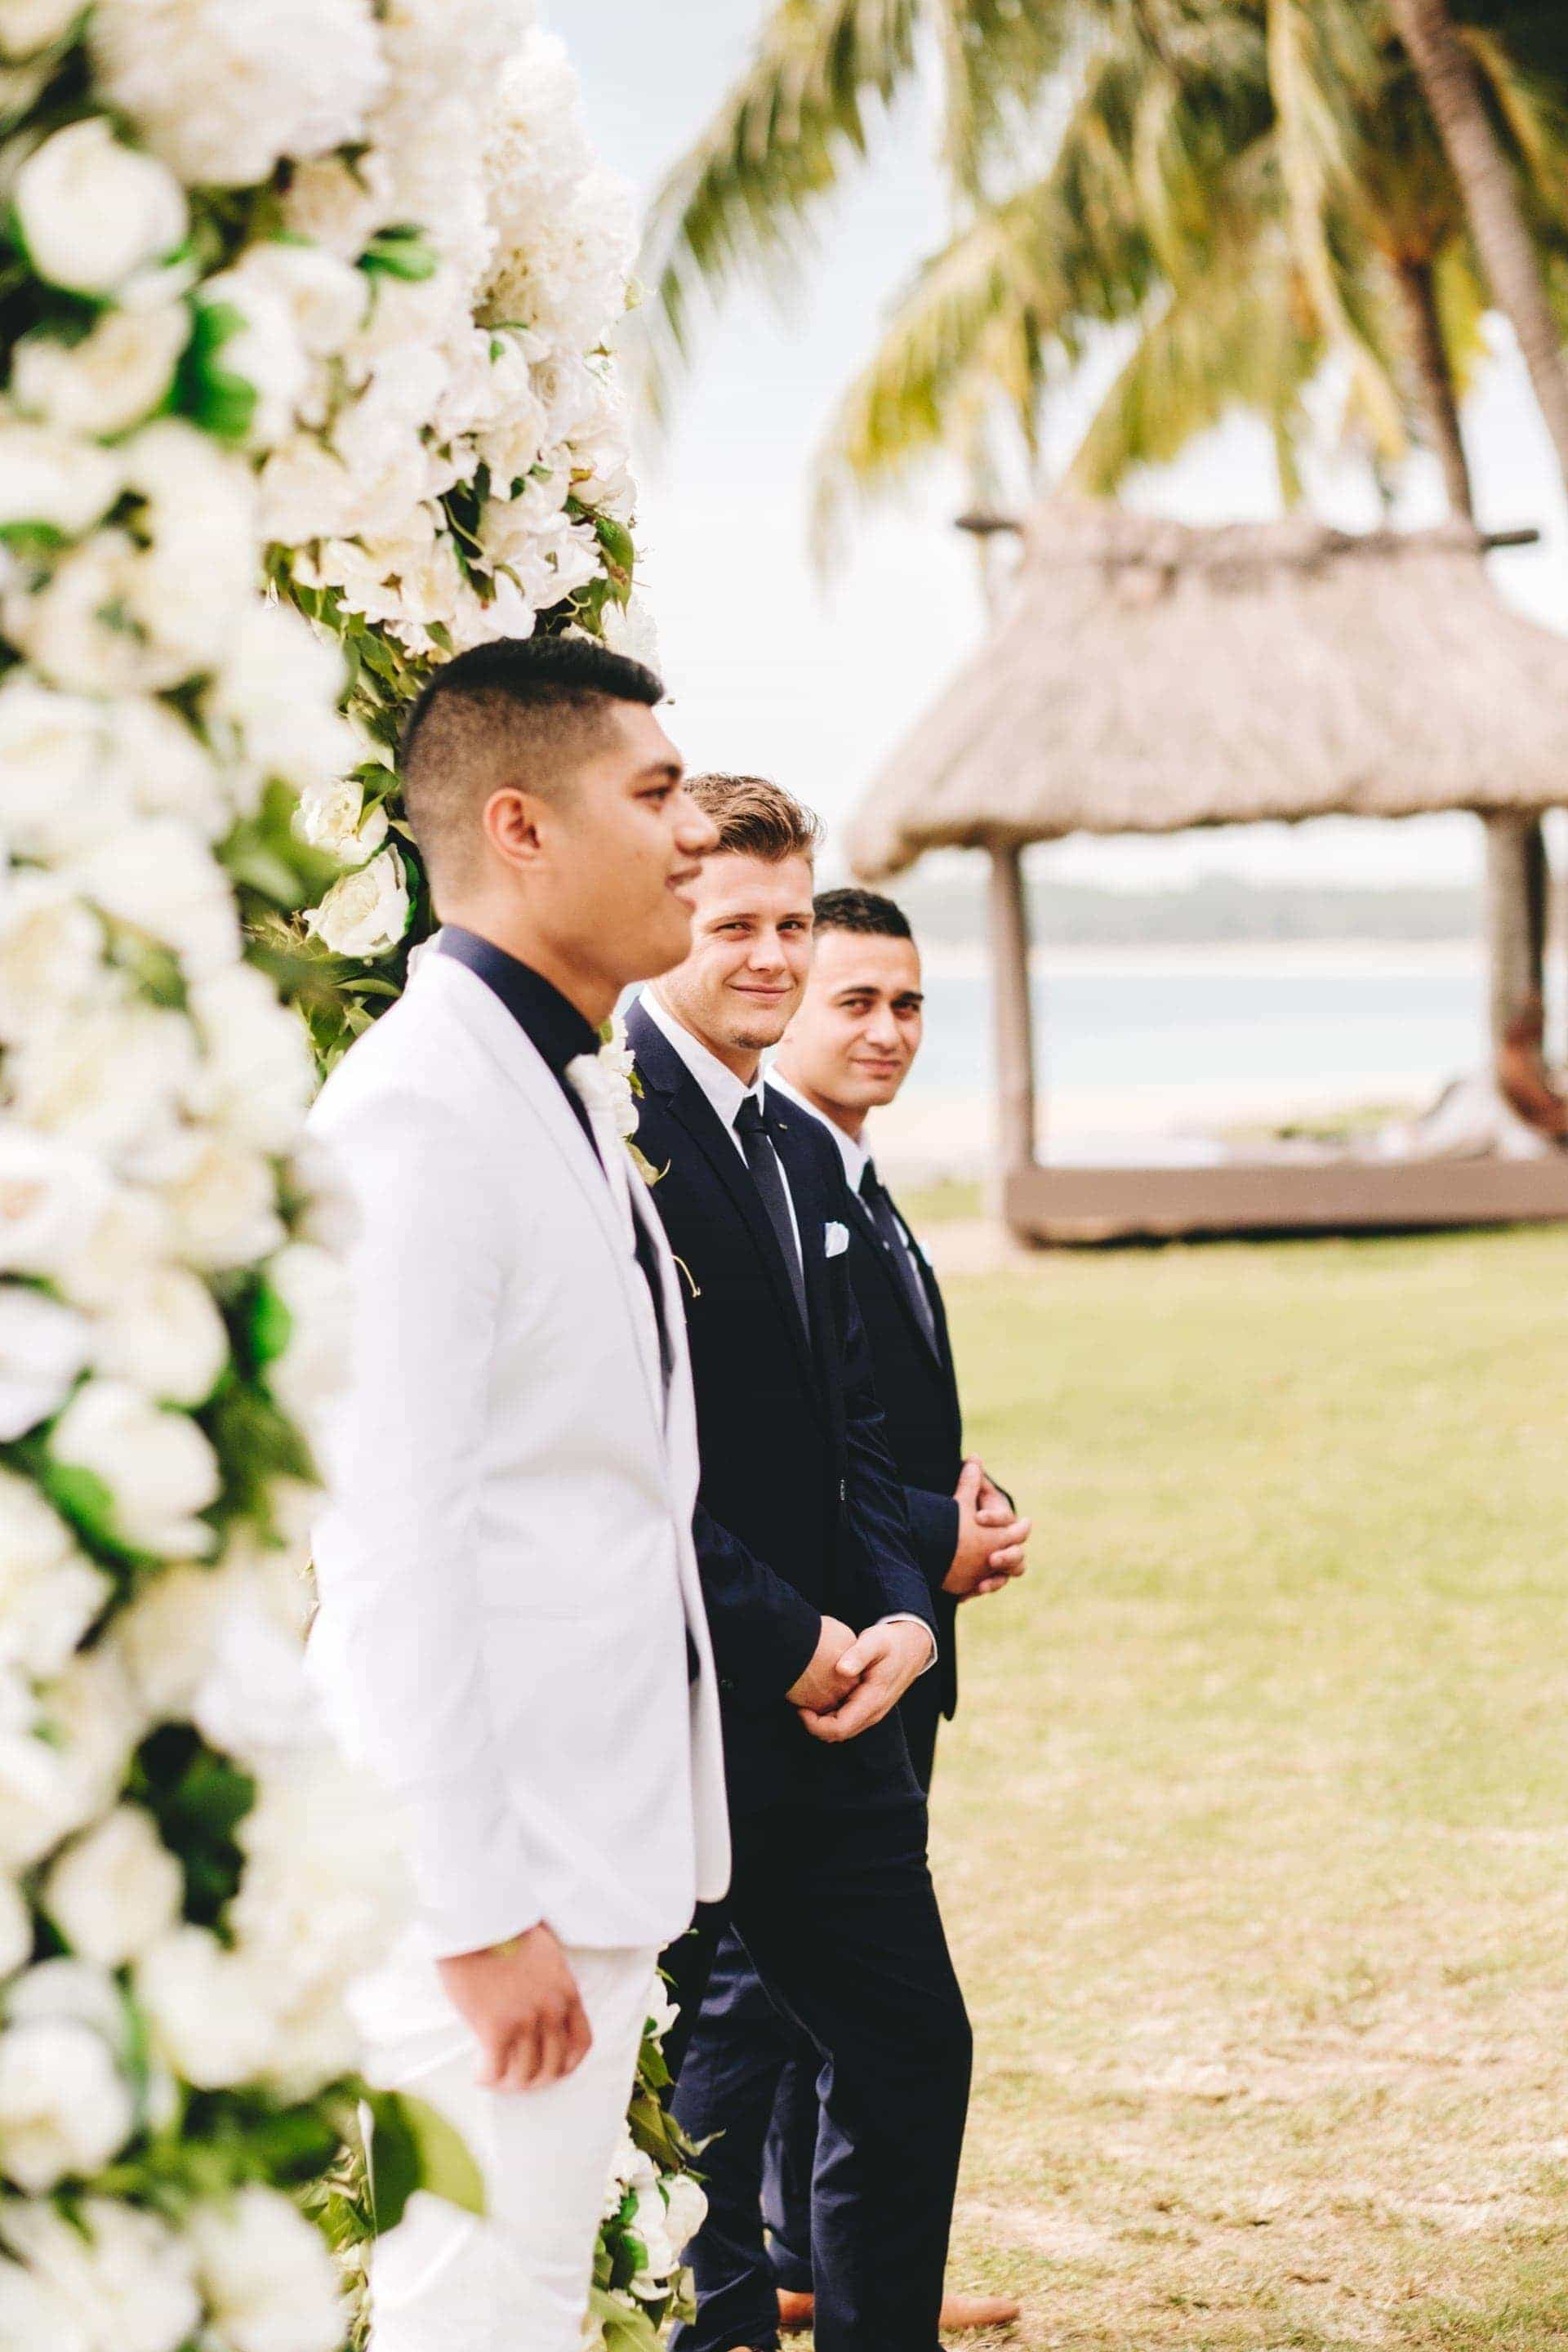 the groom waiting excitedly at ceremony arch as the groomsman and best man watch on